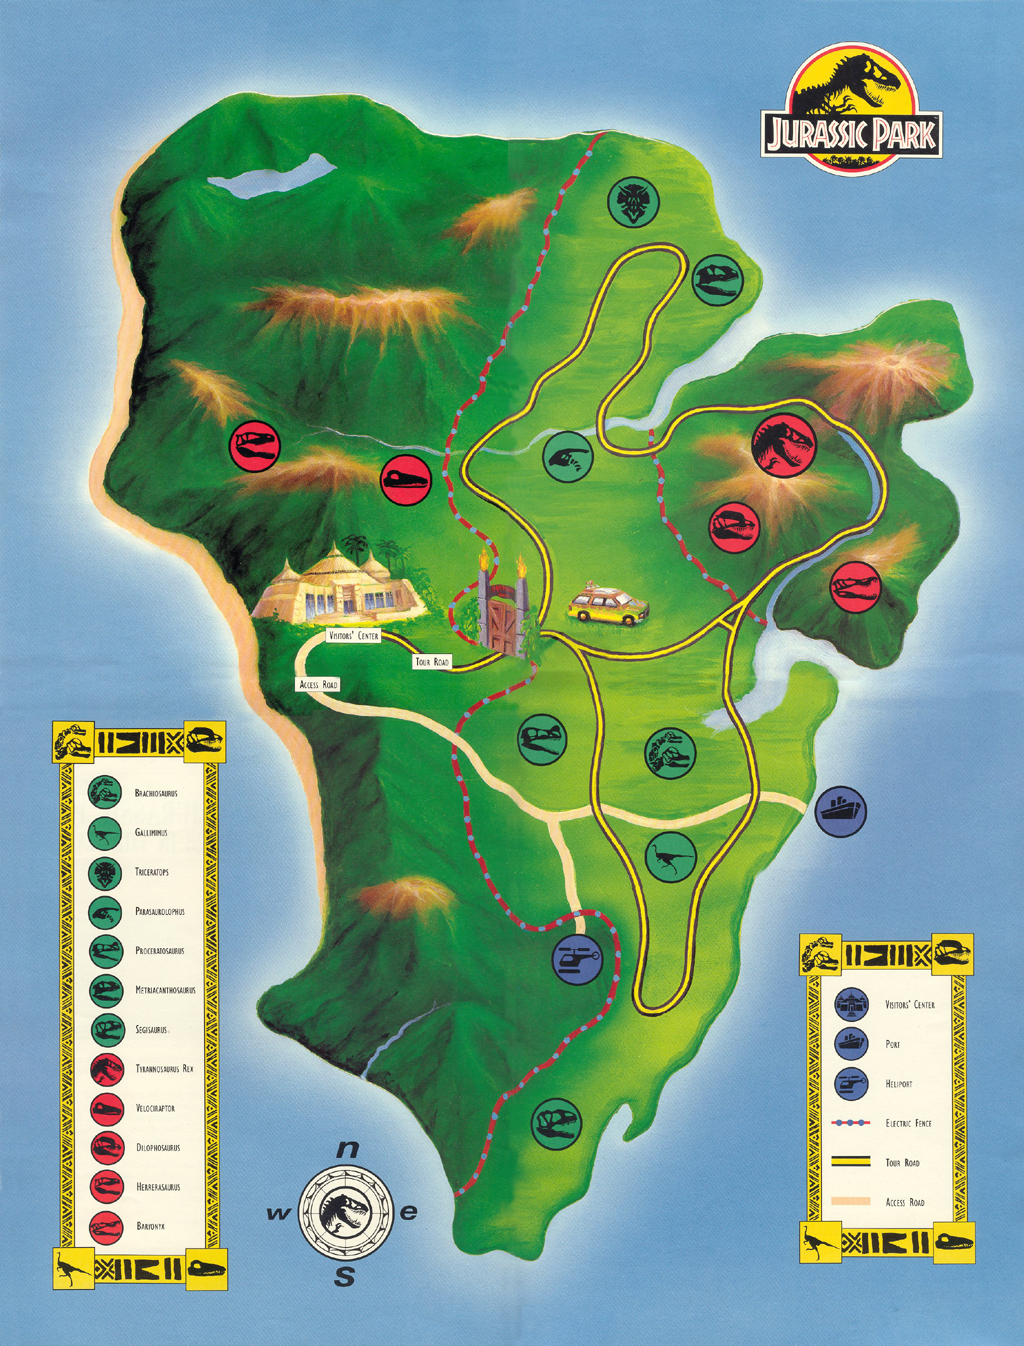 Park map jurassic park wiki fandom powered by wikia jptourmap2 gumiabroncs Images